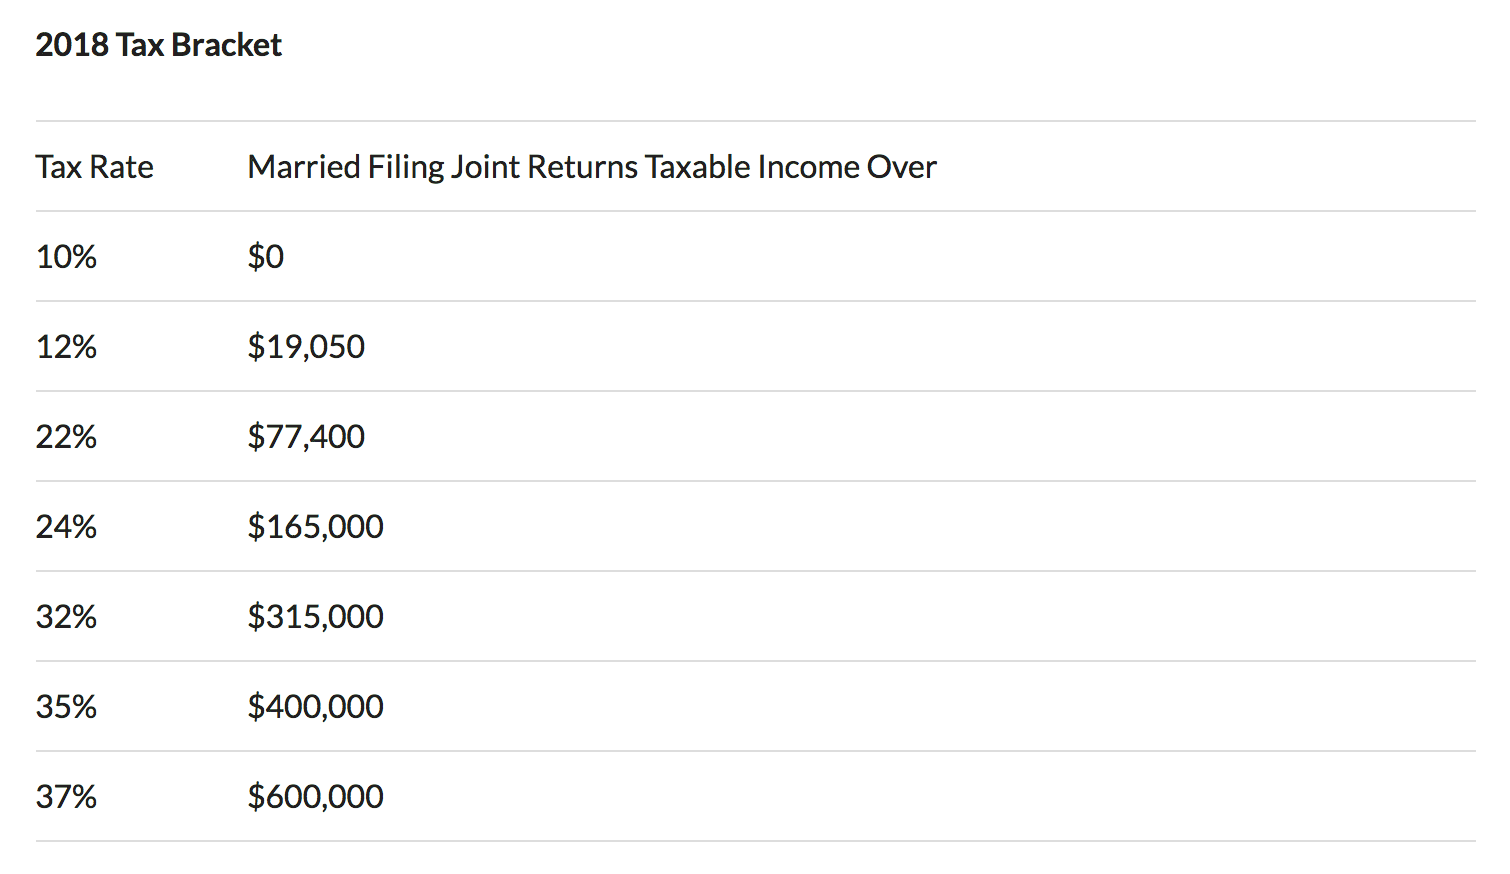 2018 married filing joint returns tax bracket